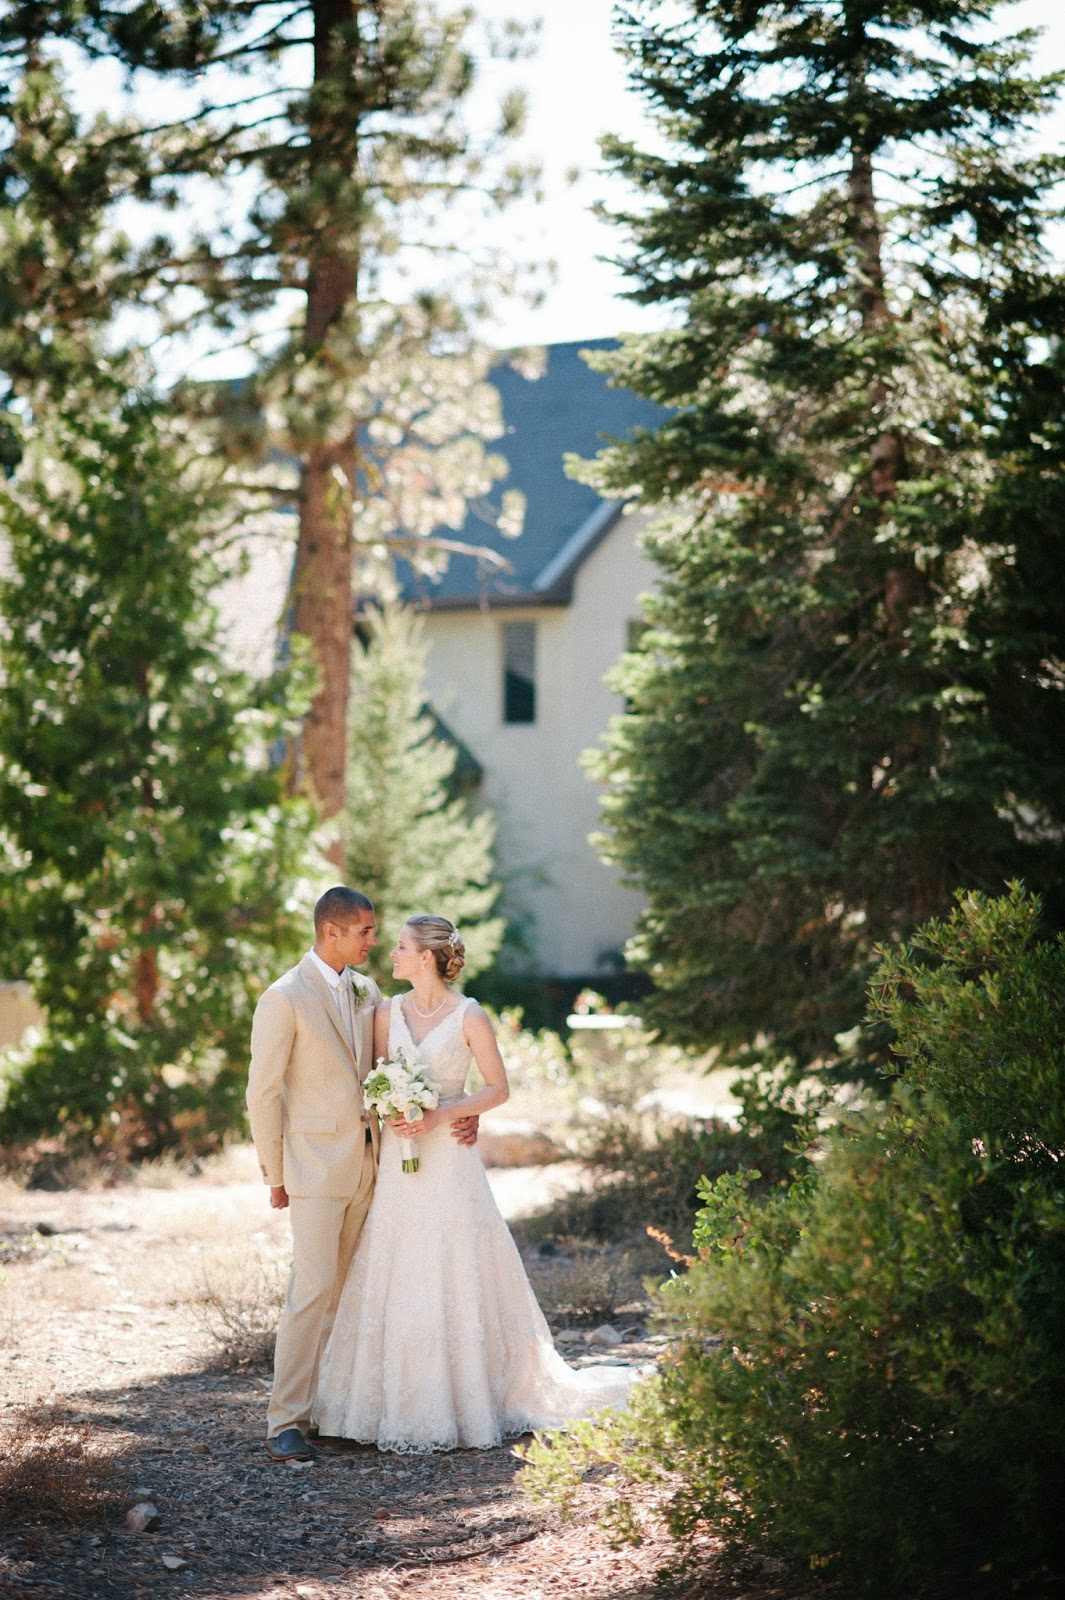 All white mountain wedding // Acres of Hope Photography // Take the Cake Event Planning